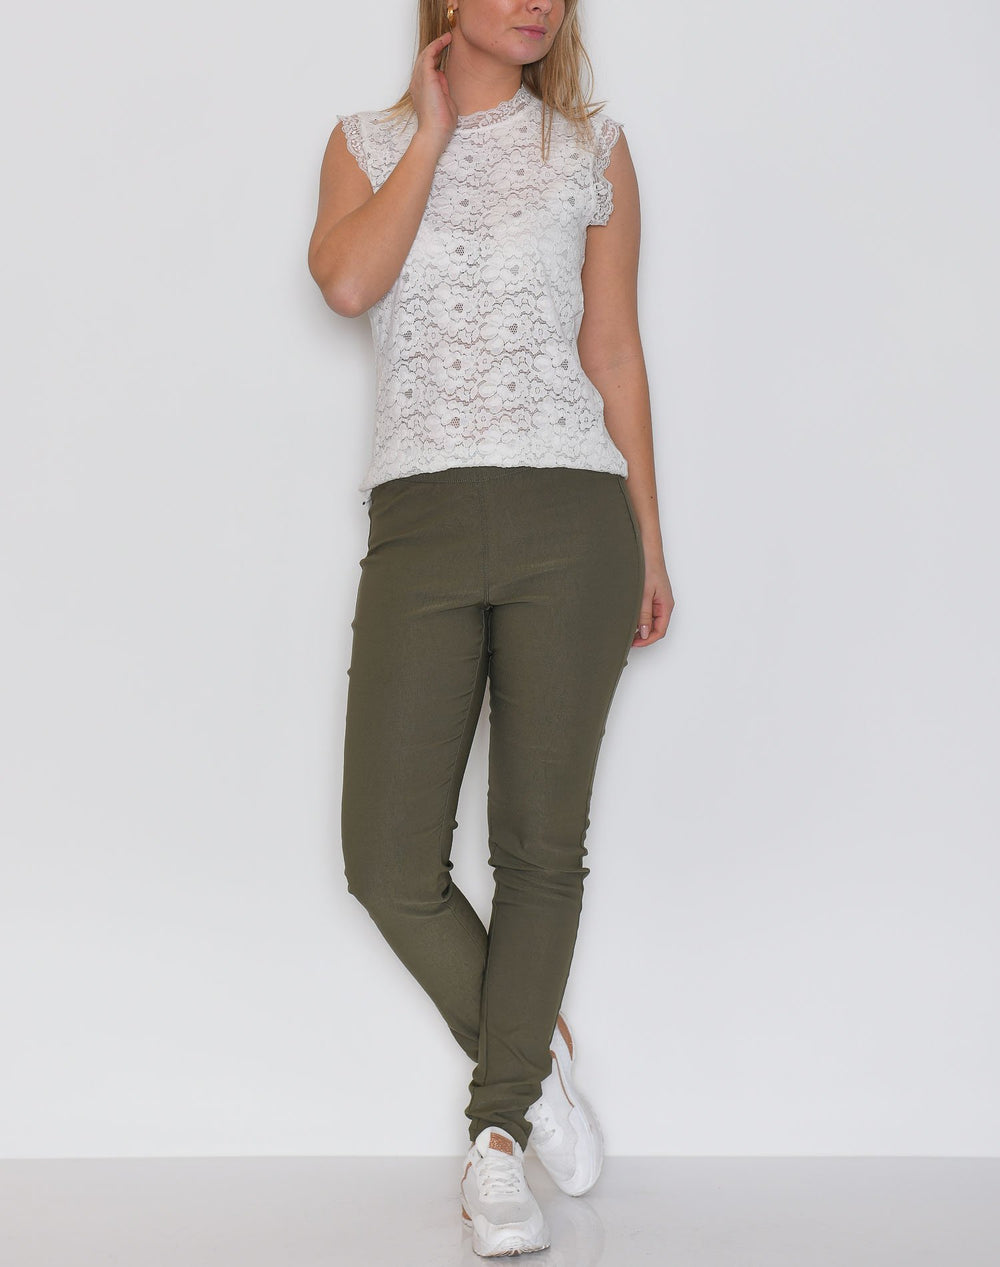 Kaffe KAjoleen pants grape leaf - Online-Mode